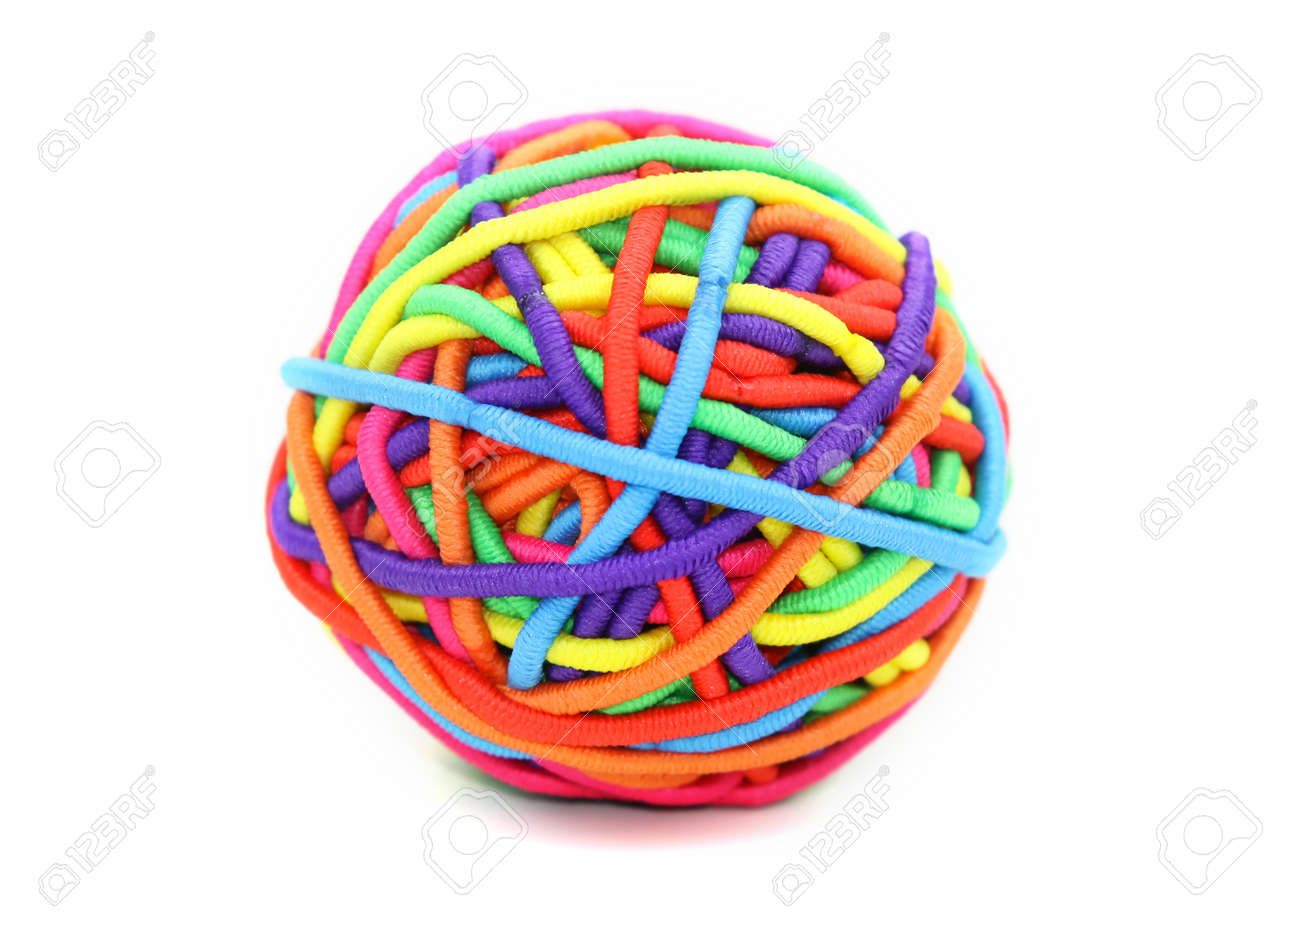 Colorful ball made up of girl's rubber bands Stock Photo - 8667300